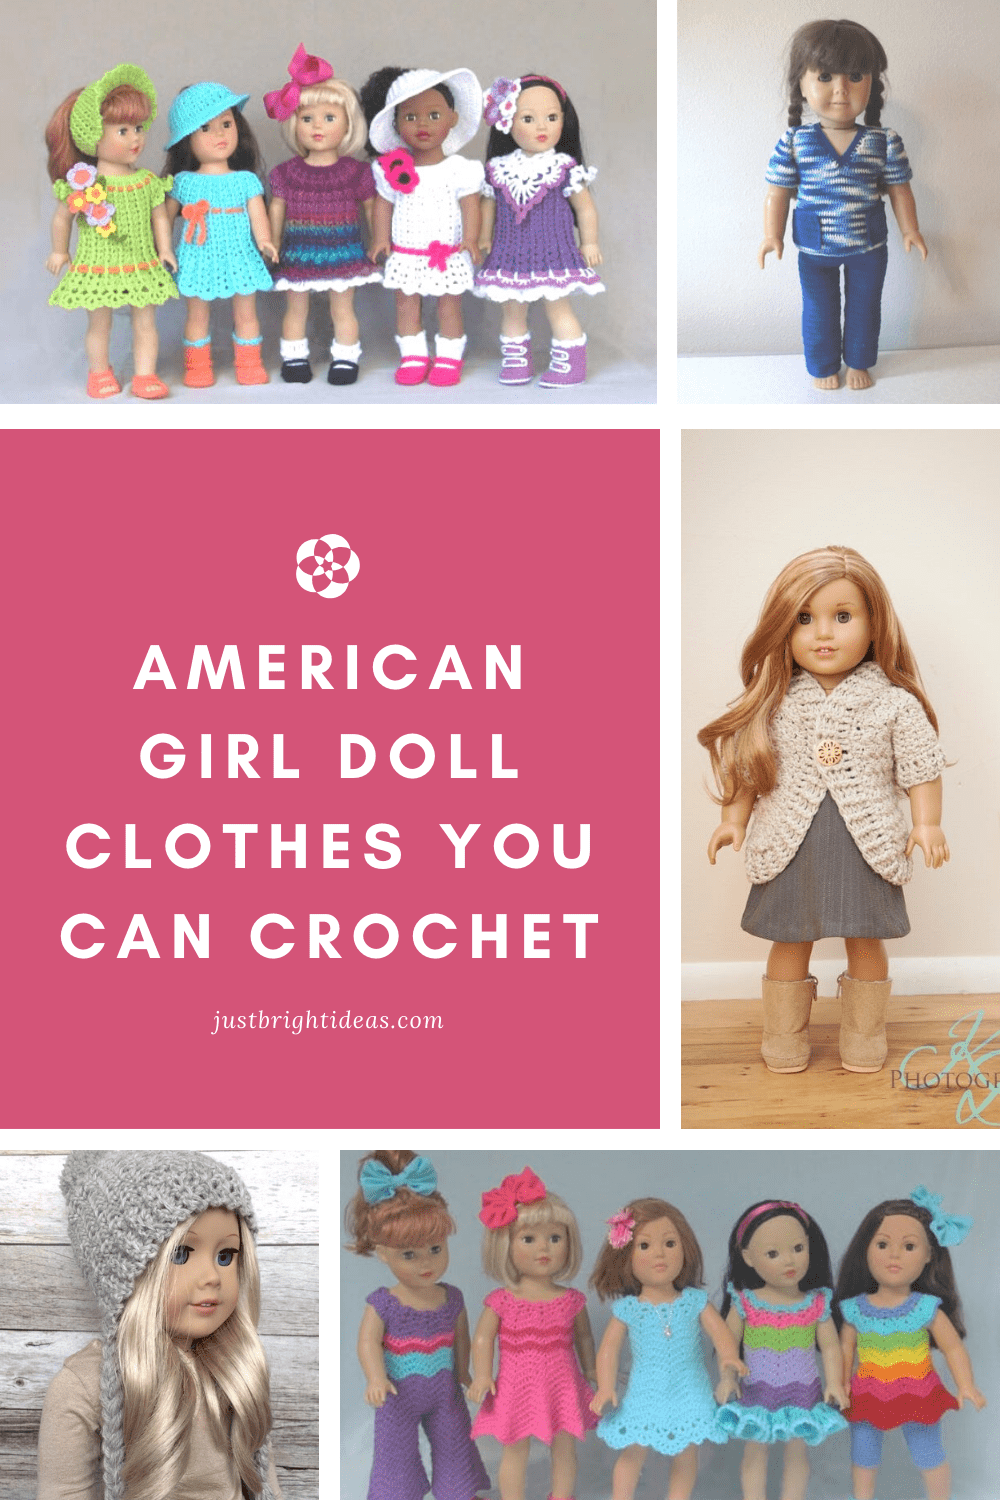 The cute crochet patterns can be used to make outfits for your American Girl or other 18 inch doll. Everything from bathing suits to wedding dresses!